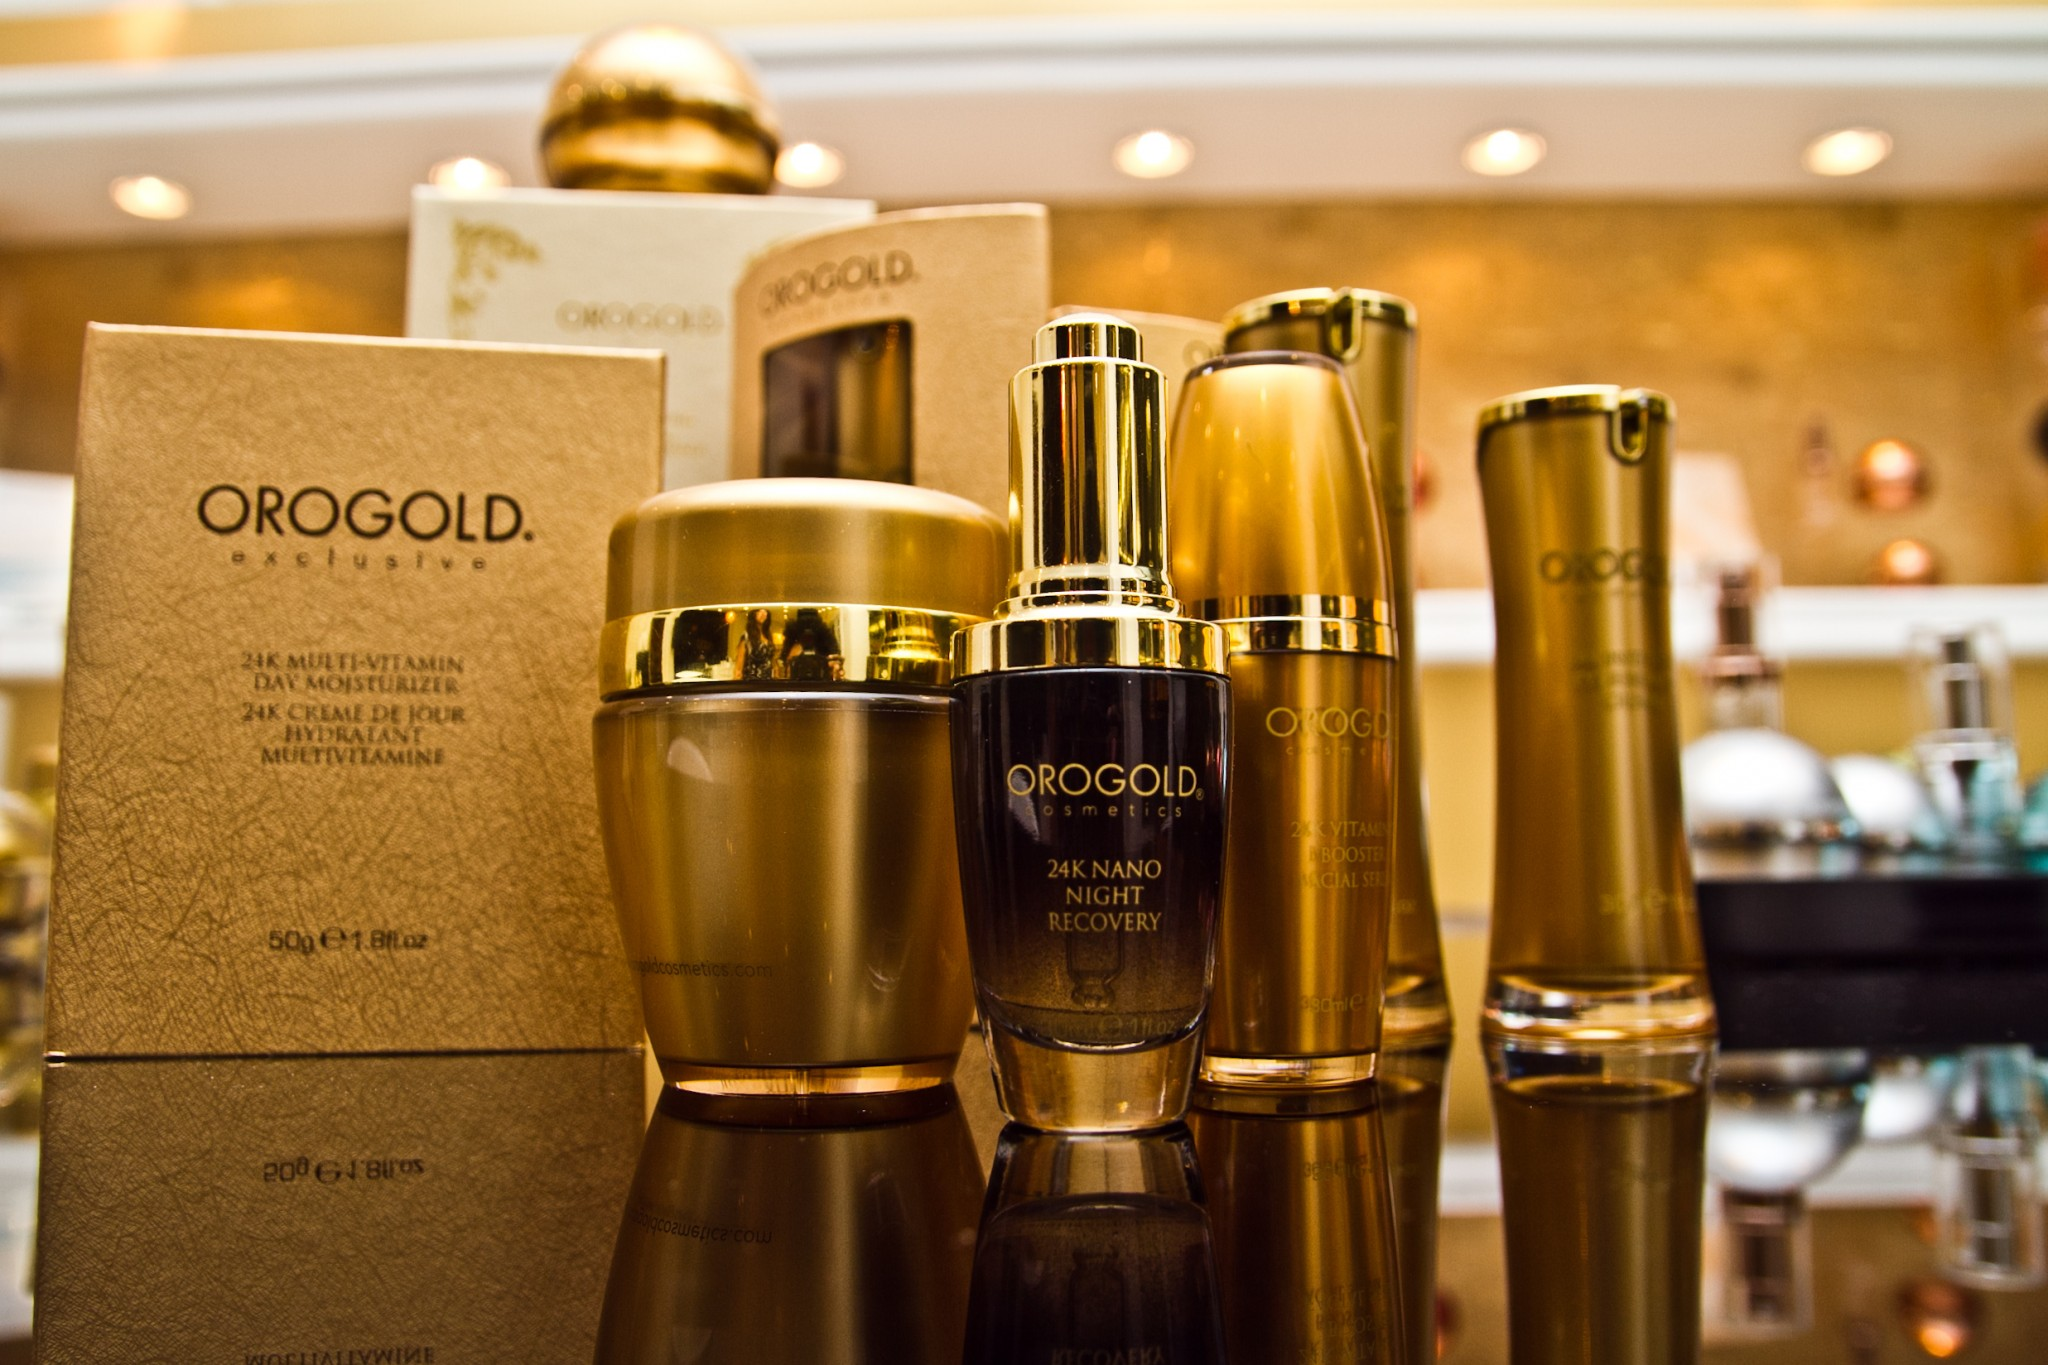 About OROGOLD Cosmetics